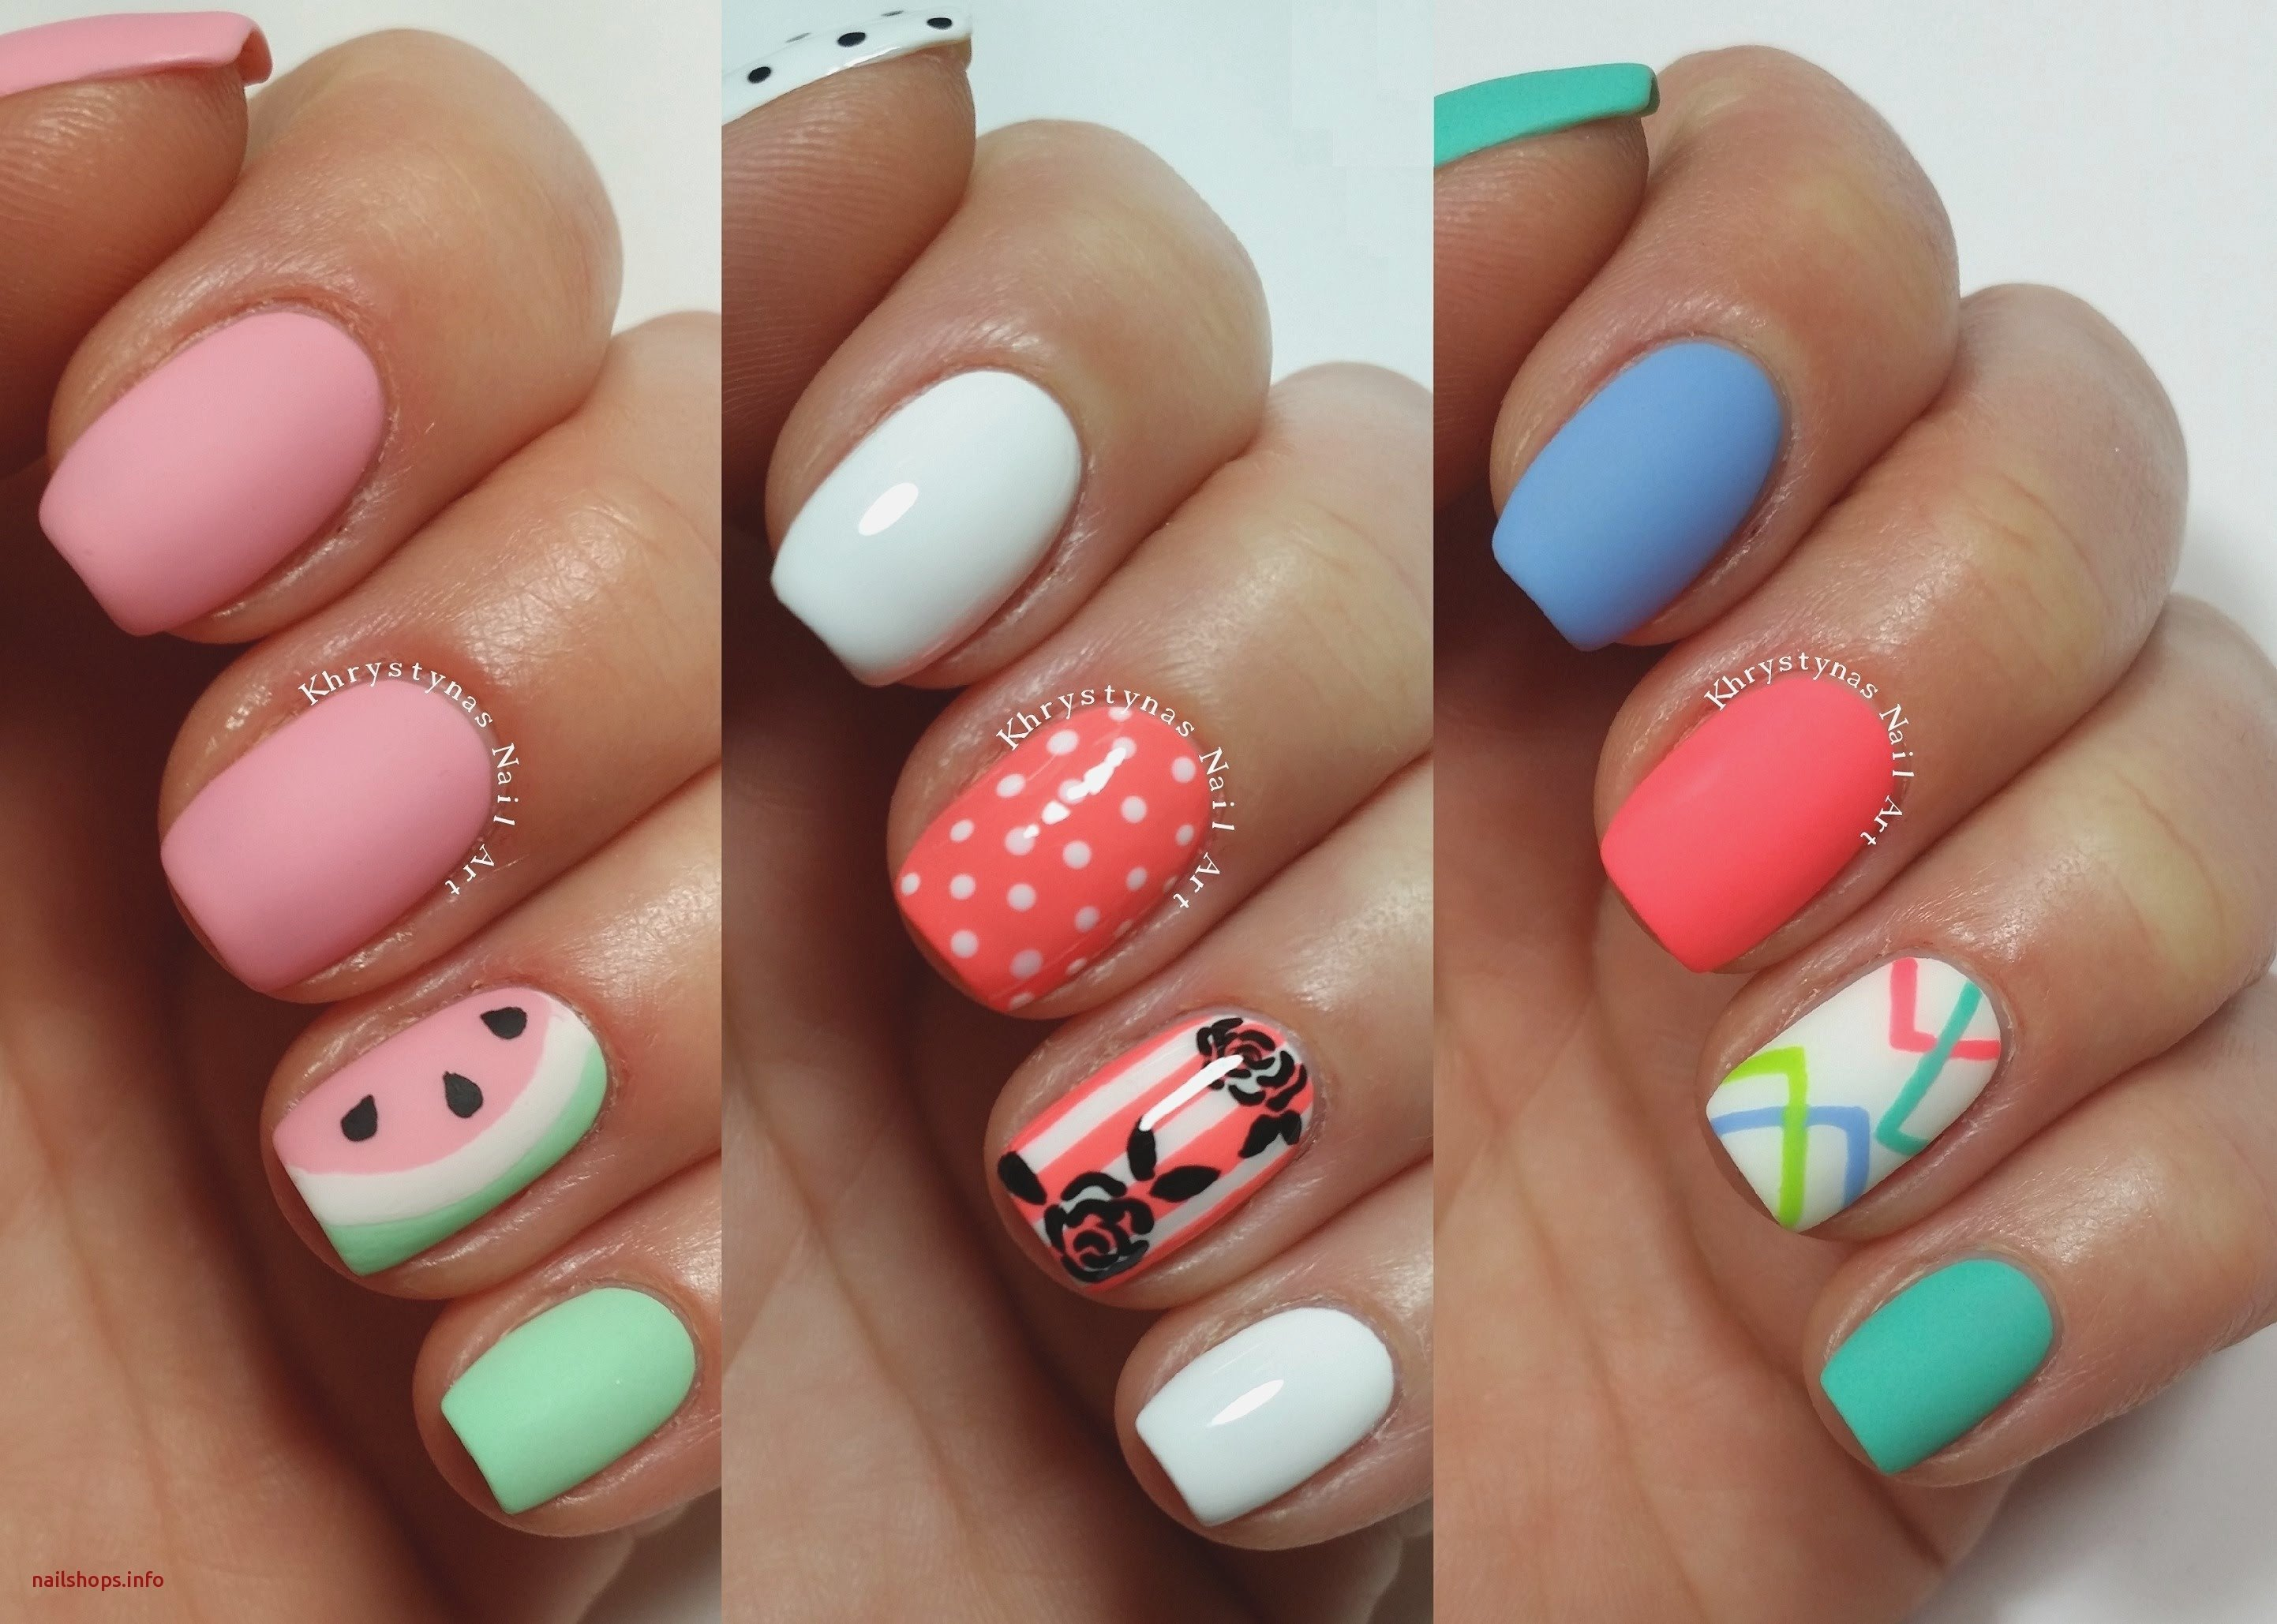 10 Nice Nail Design Ideas For Short Nails